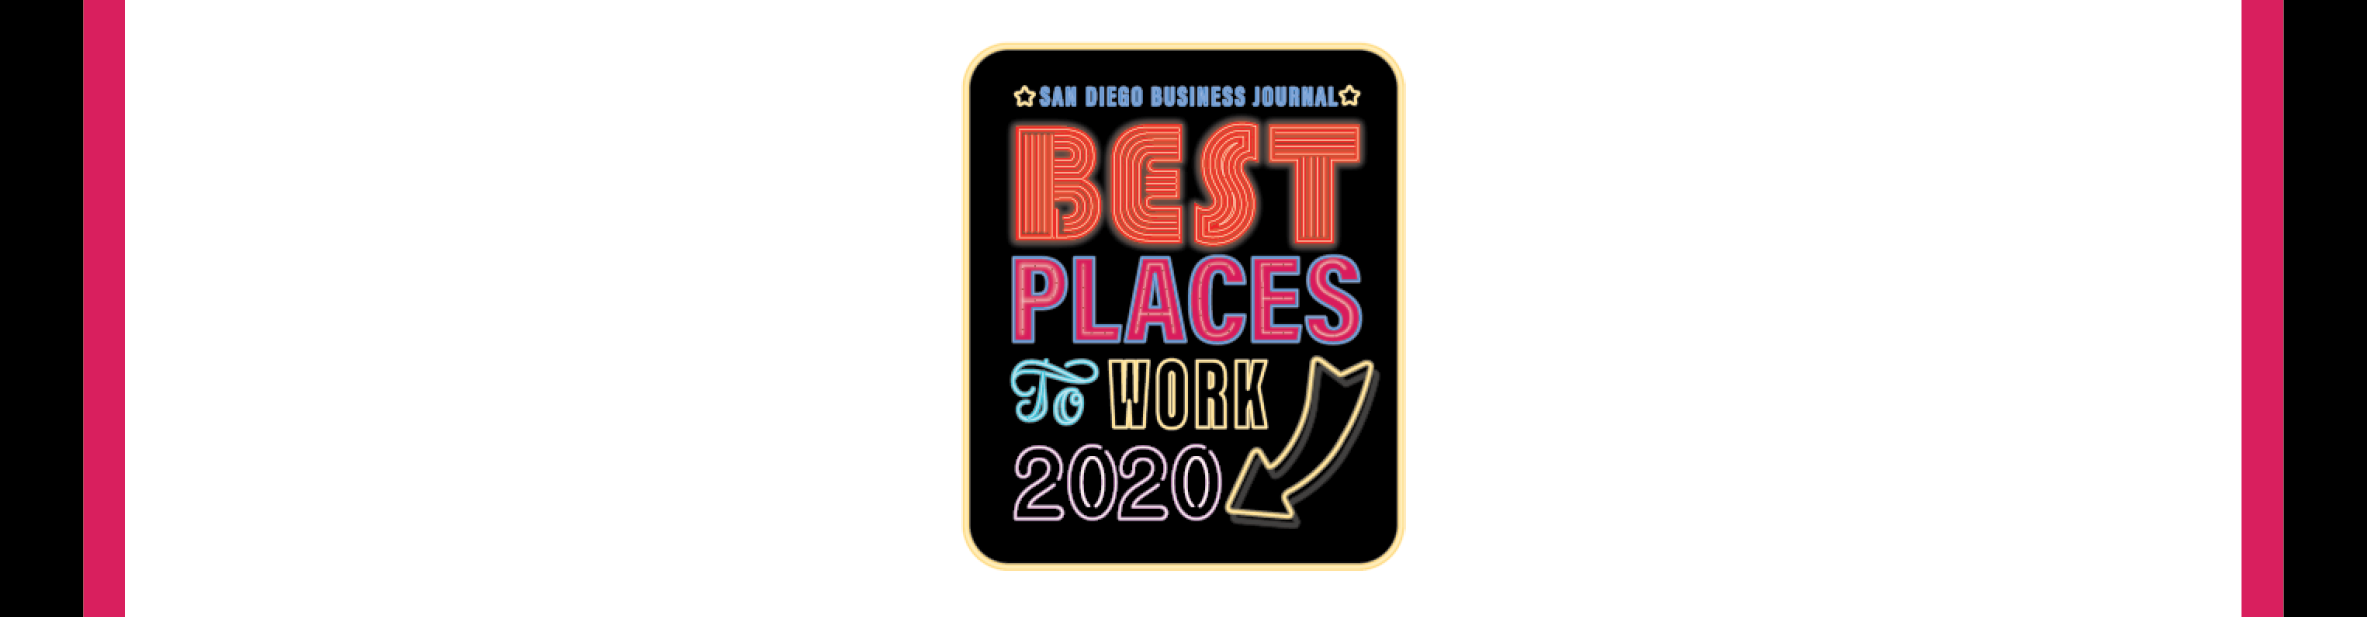 San Diego Business Journal Best Places to Work 2020